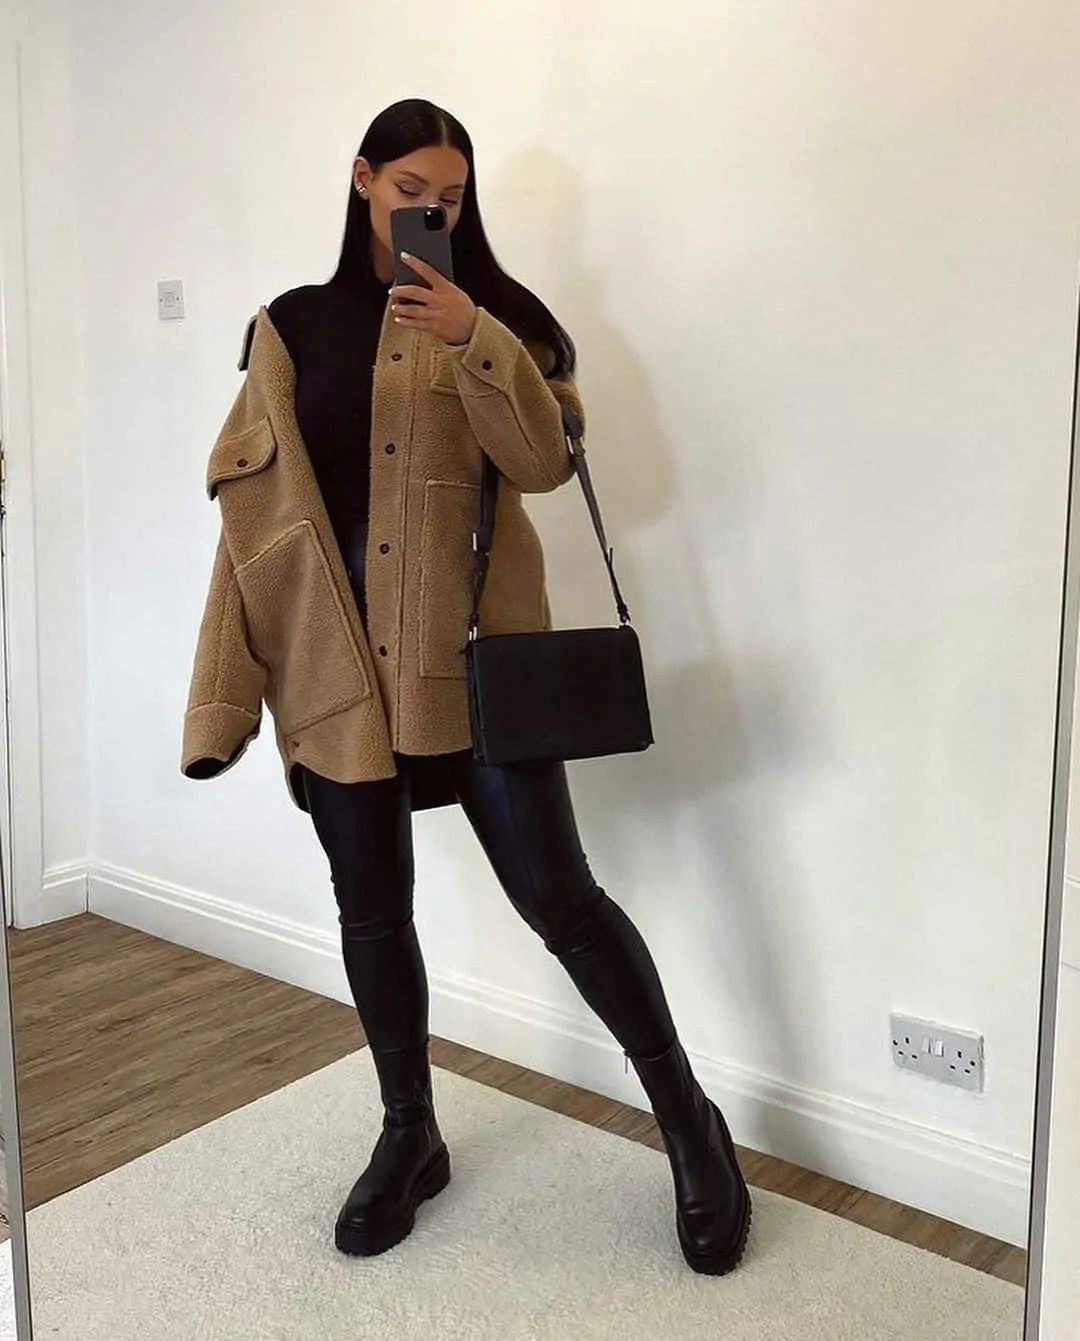 100+ fashion inspo outfits that you have to see no matter what your style is 39